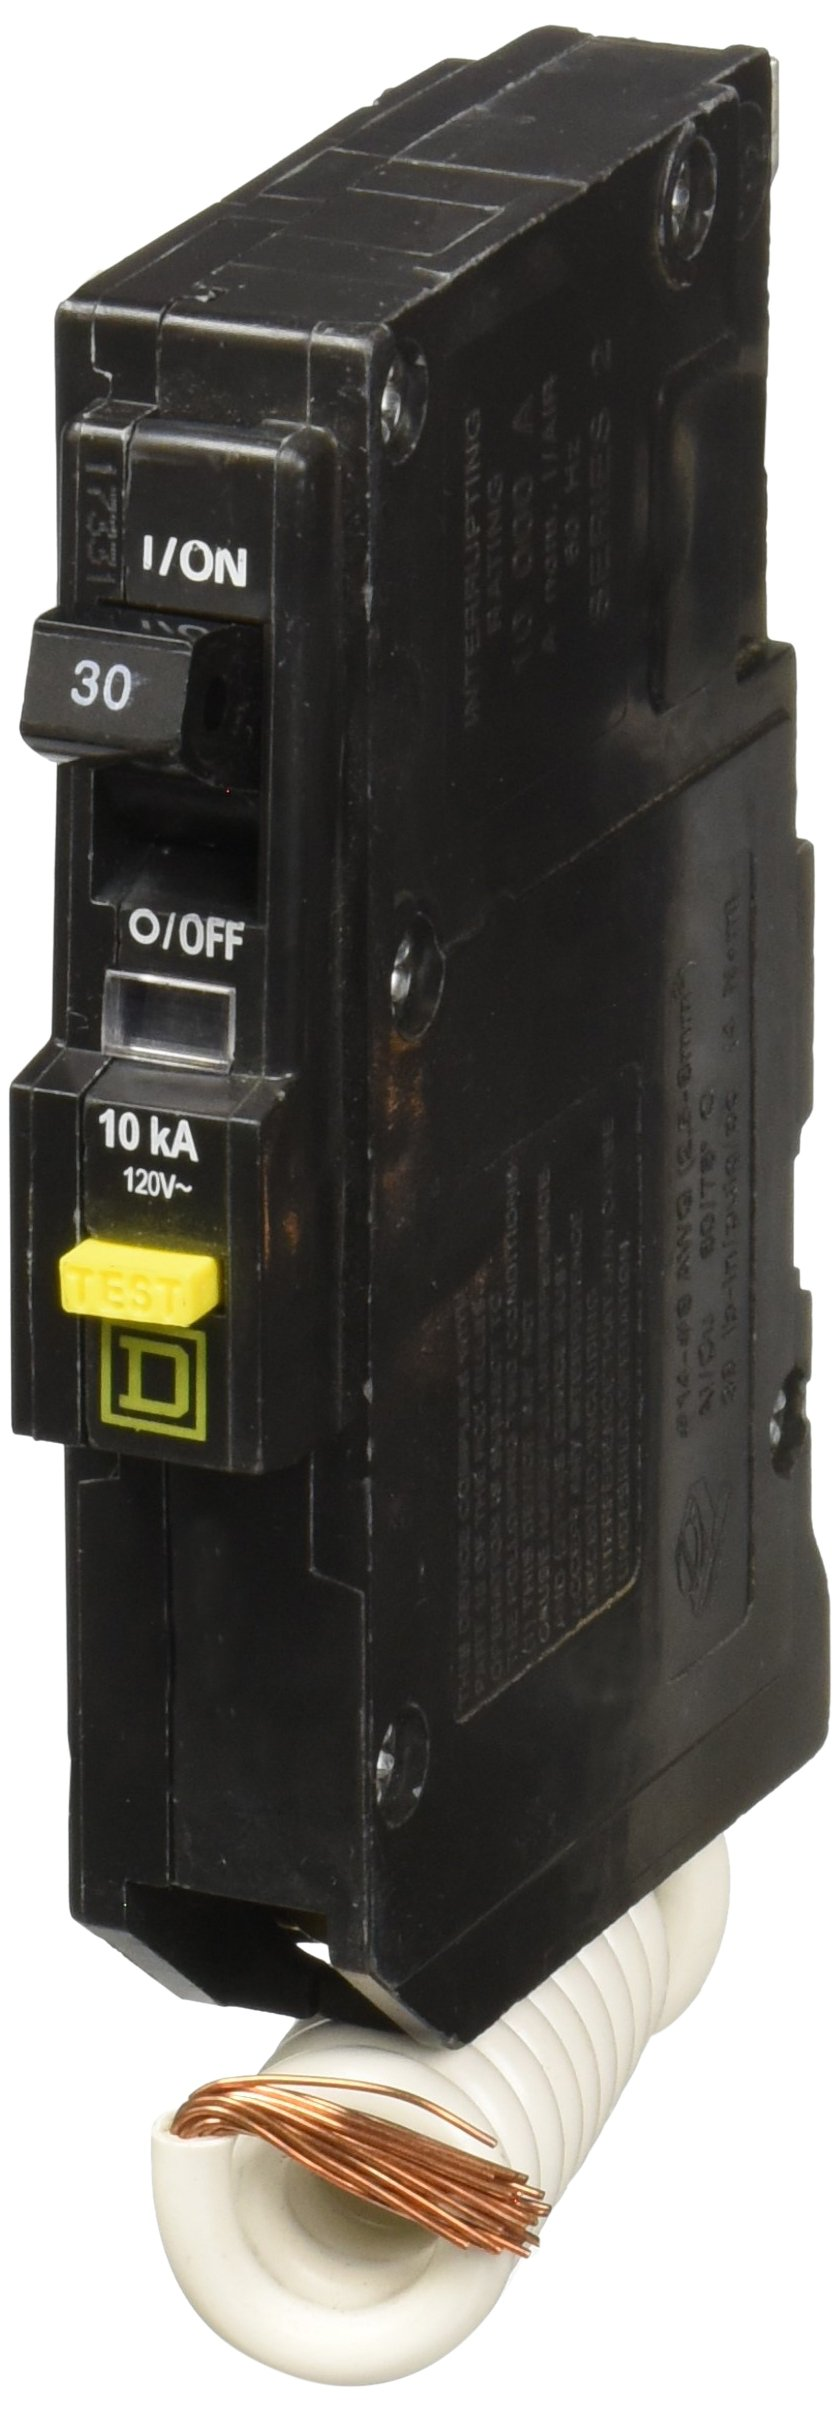 SQUARE D BY SCHNEIDER ELECTRIC QO130GFI MINIATURE CIRCUIT BREAKER 120V 30A